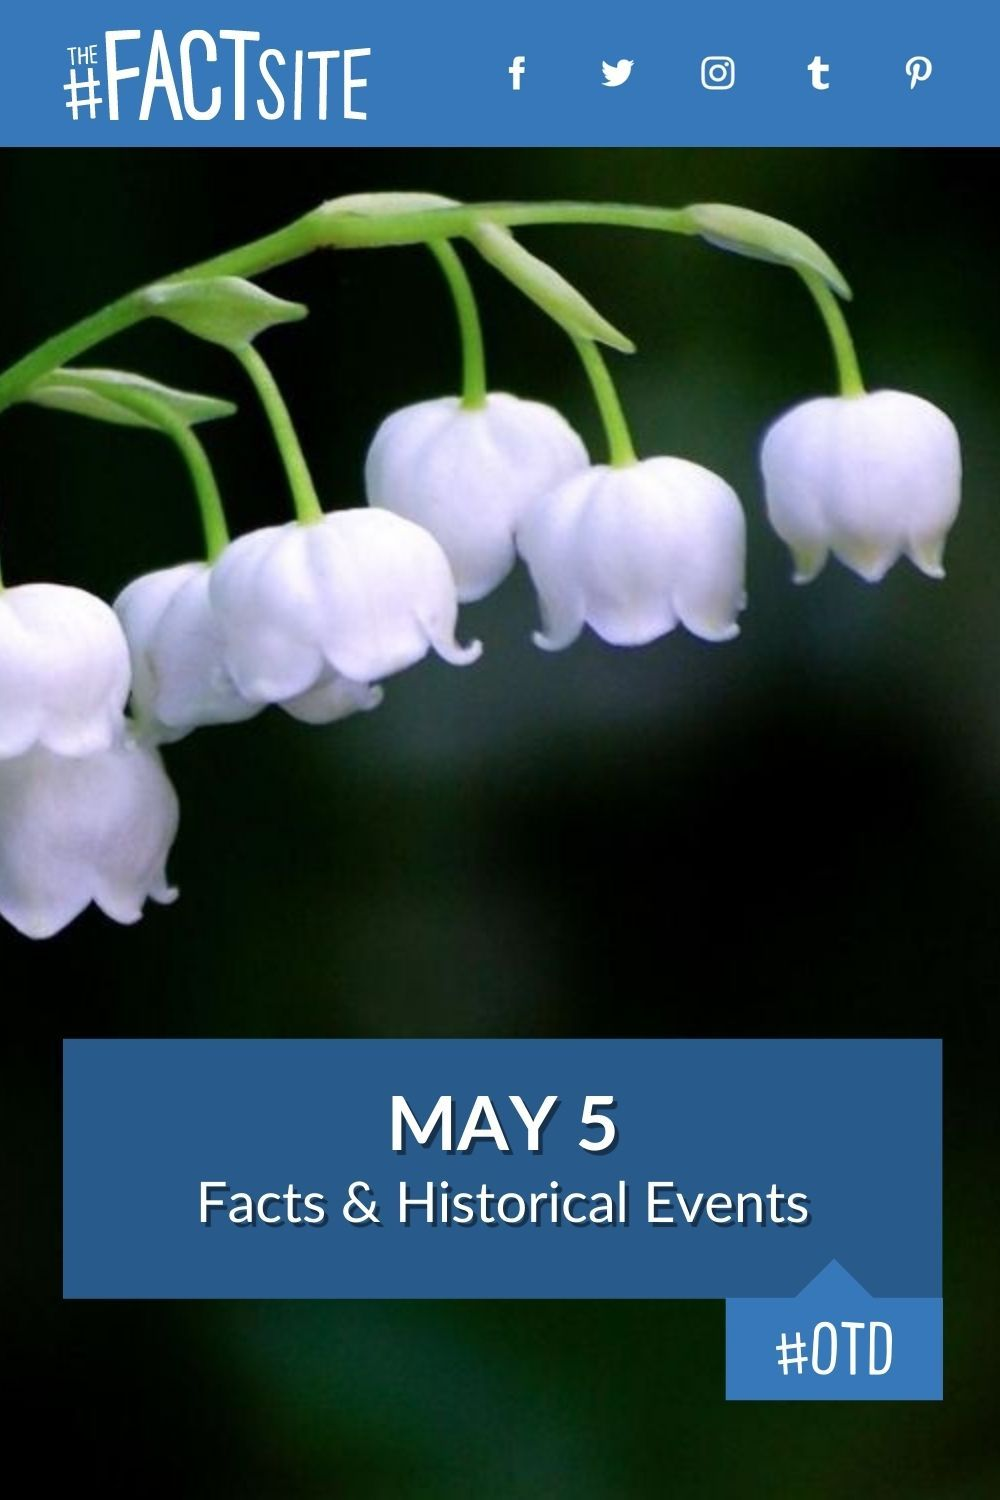 Facts & Historic Events That Happened on May 5